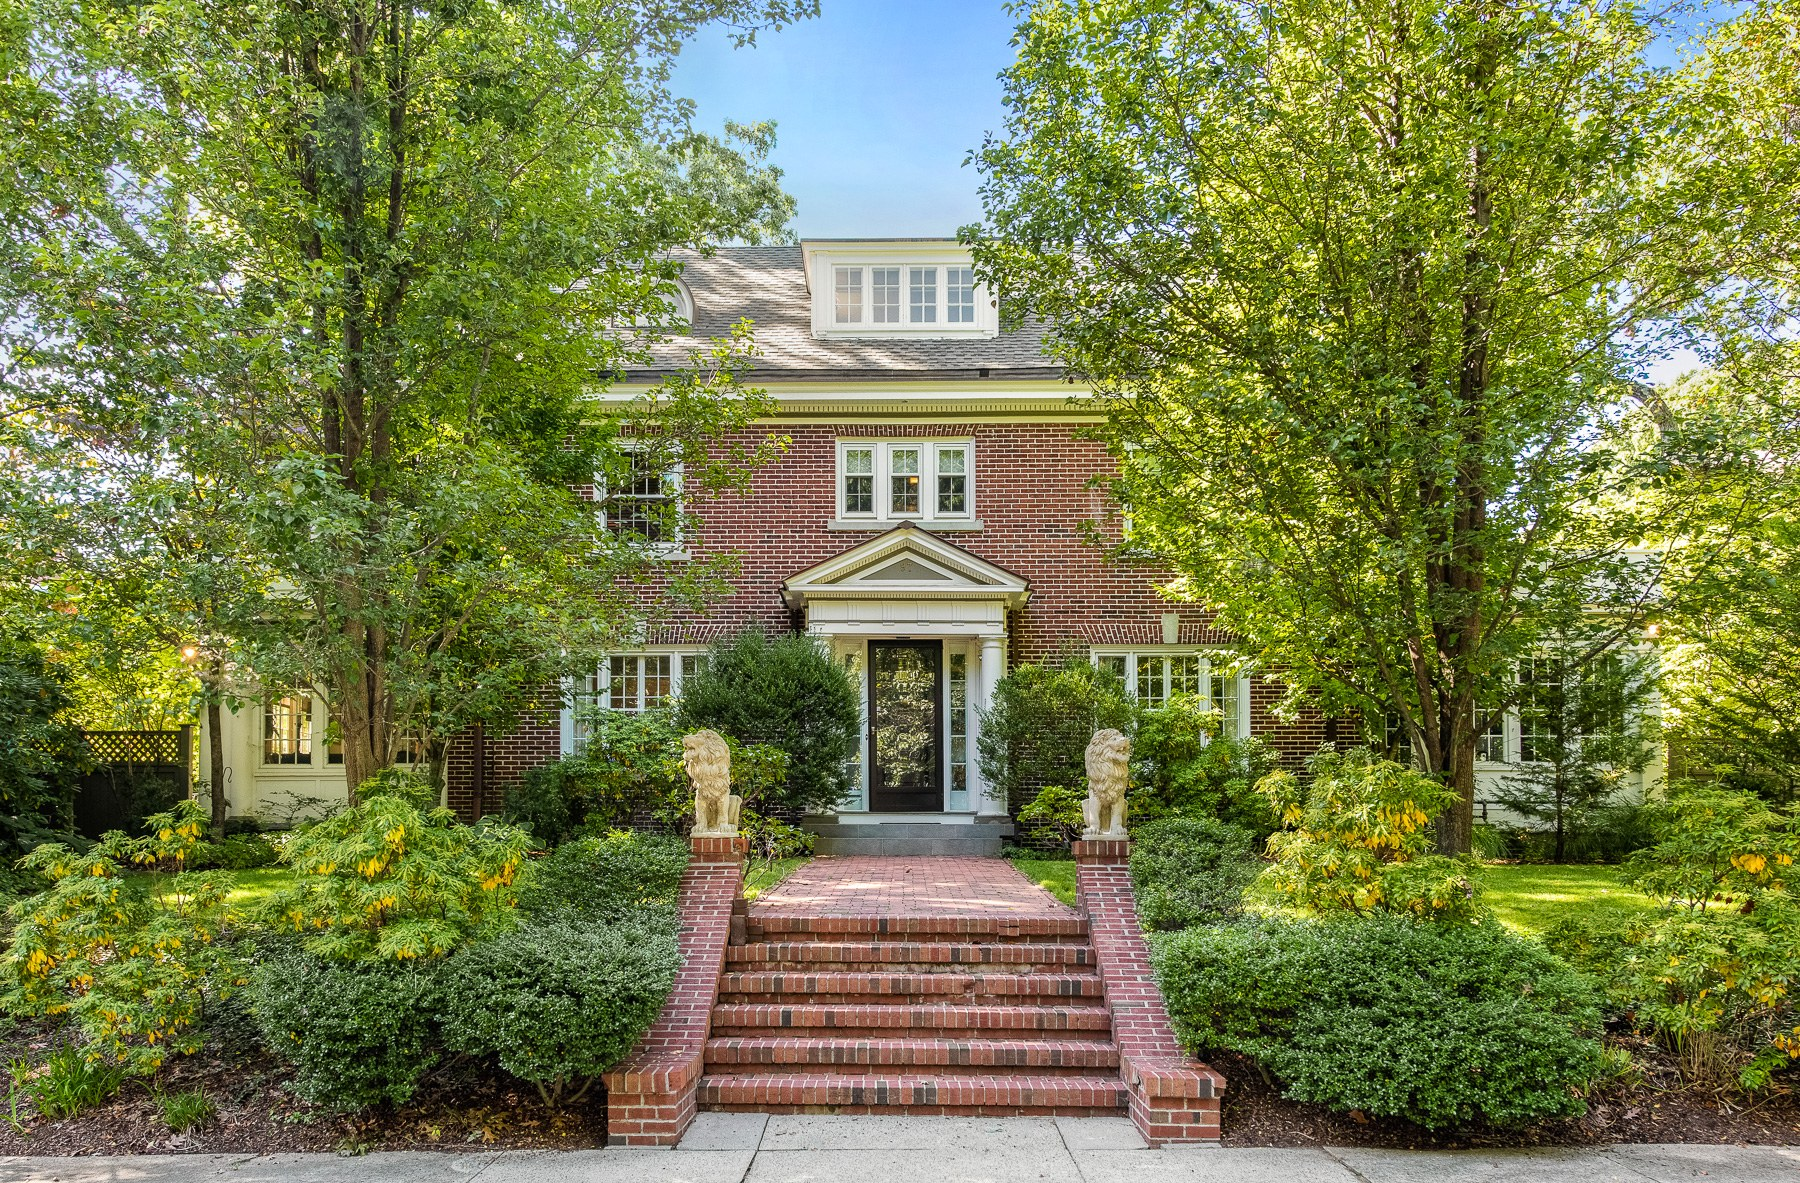 Single Family Homes for Sale at 97 Loring Avenue, East Side Of Providence, RI 97 Loring Avenue Providence, Rhode Island 02906 United States